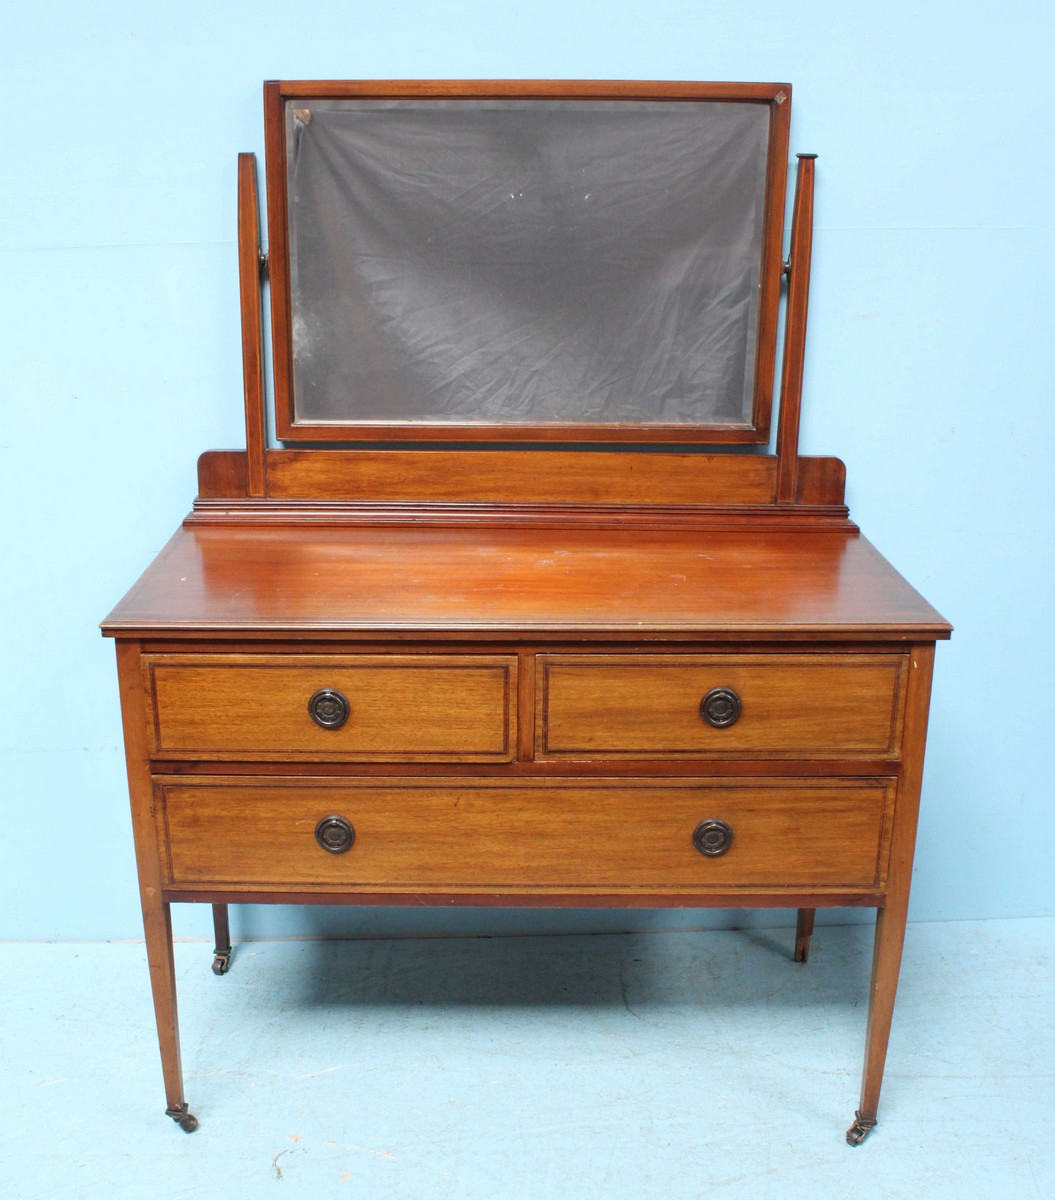 An Edwardian Sheraton Revival Dressing Table With Mirror